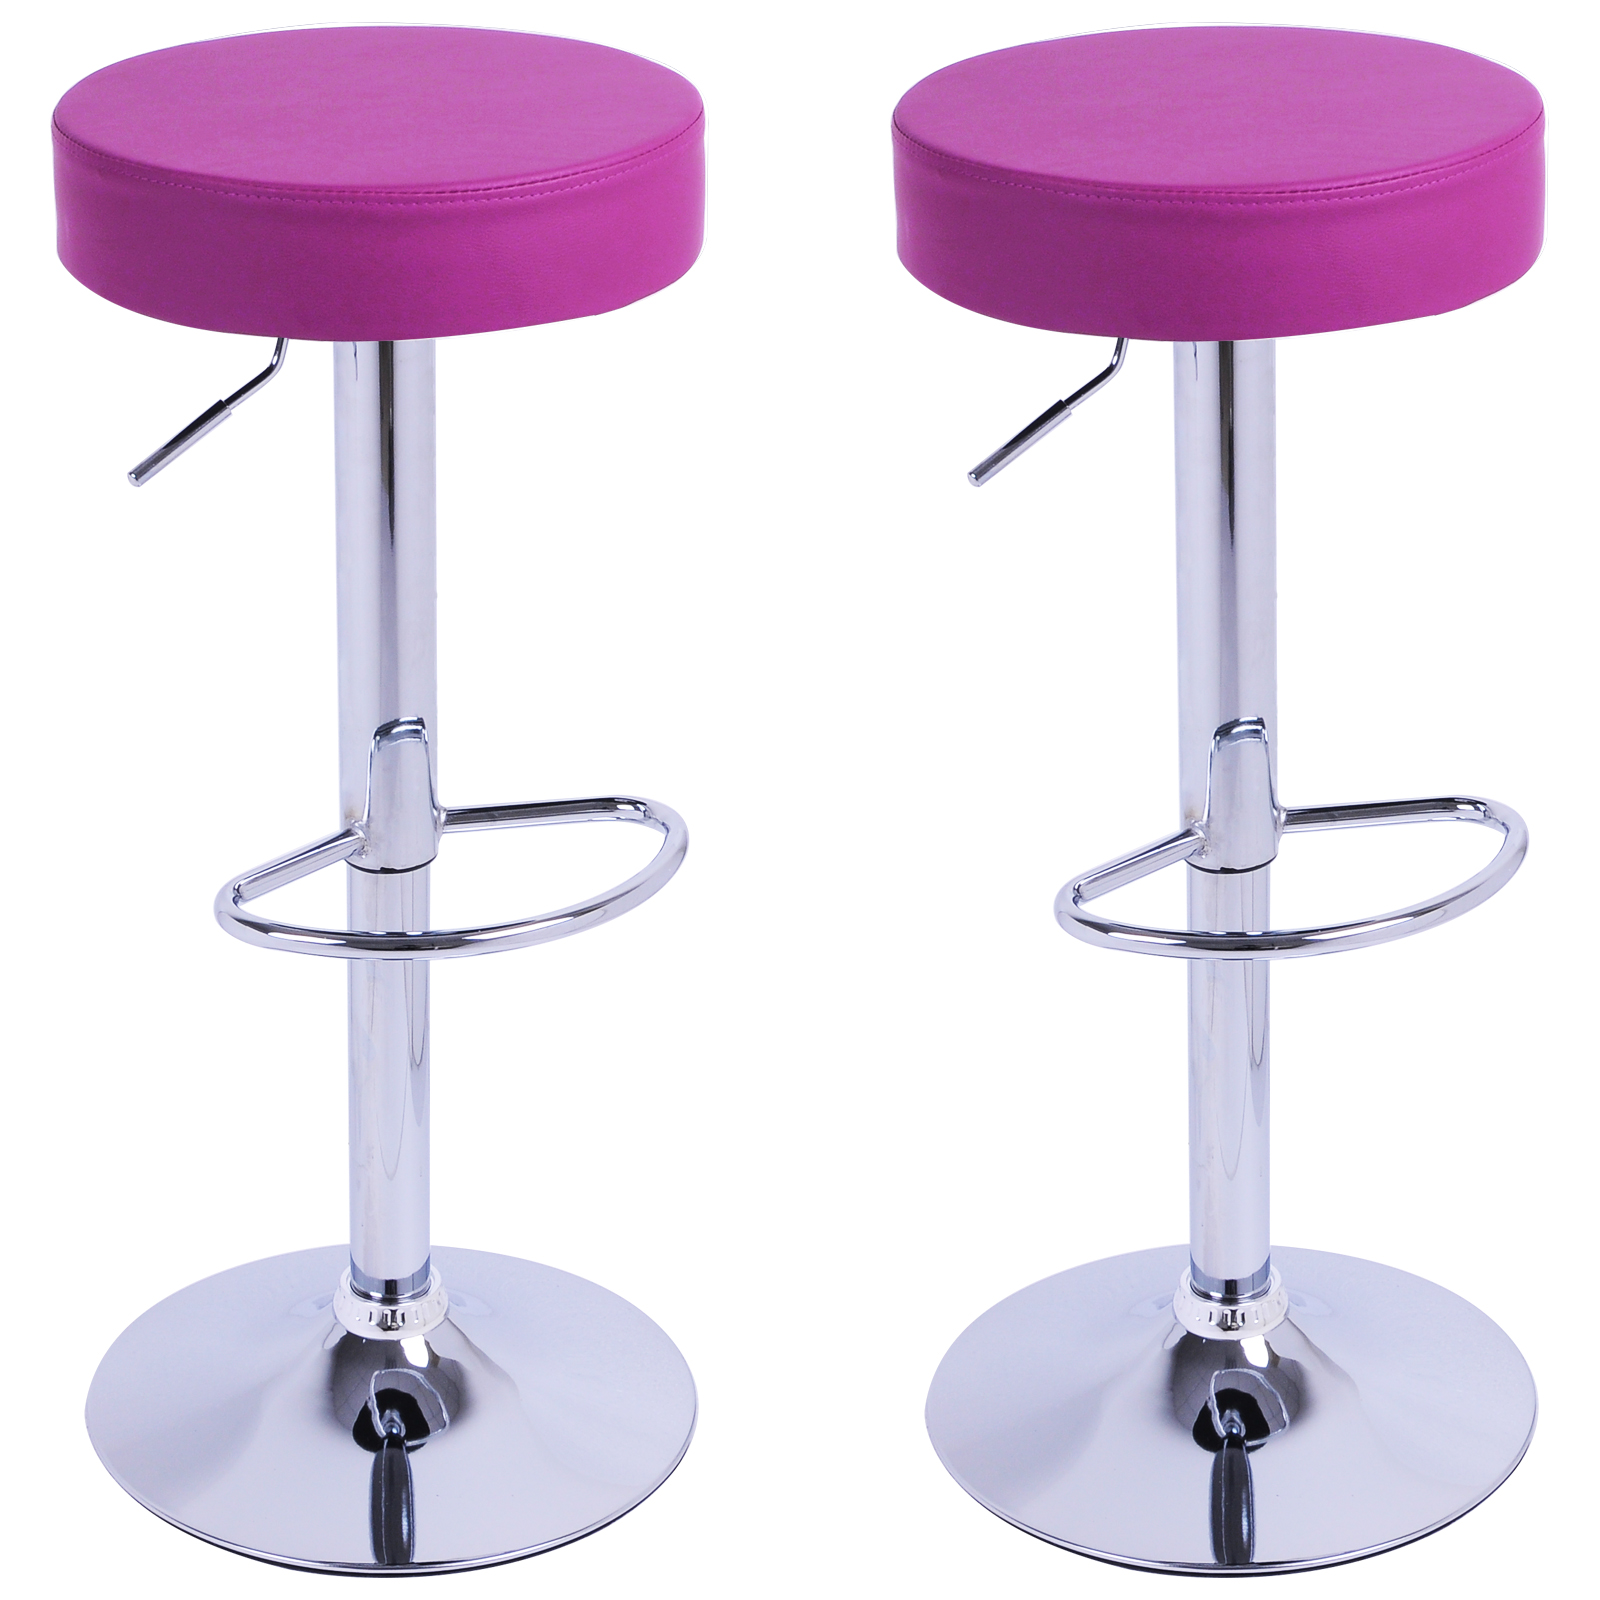 R glable lot de 2 cuisine tabouret de bar en pu 1 for Bar pivotant cuisine